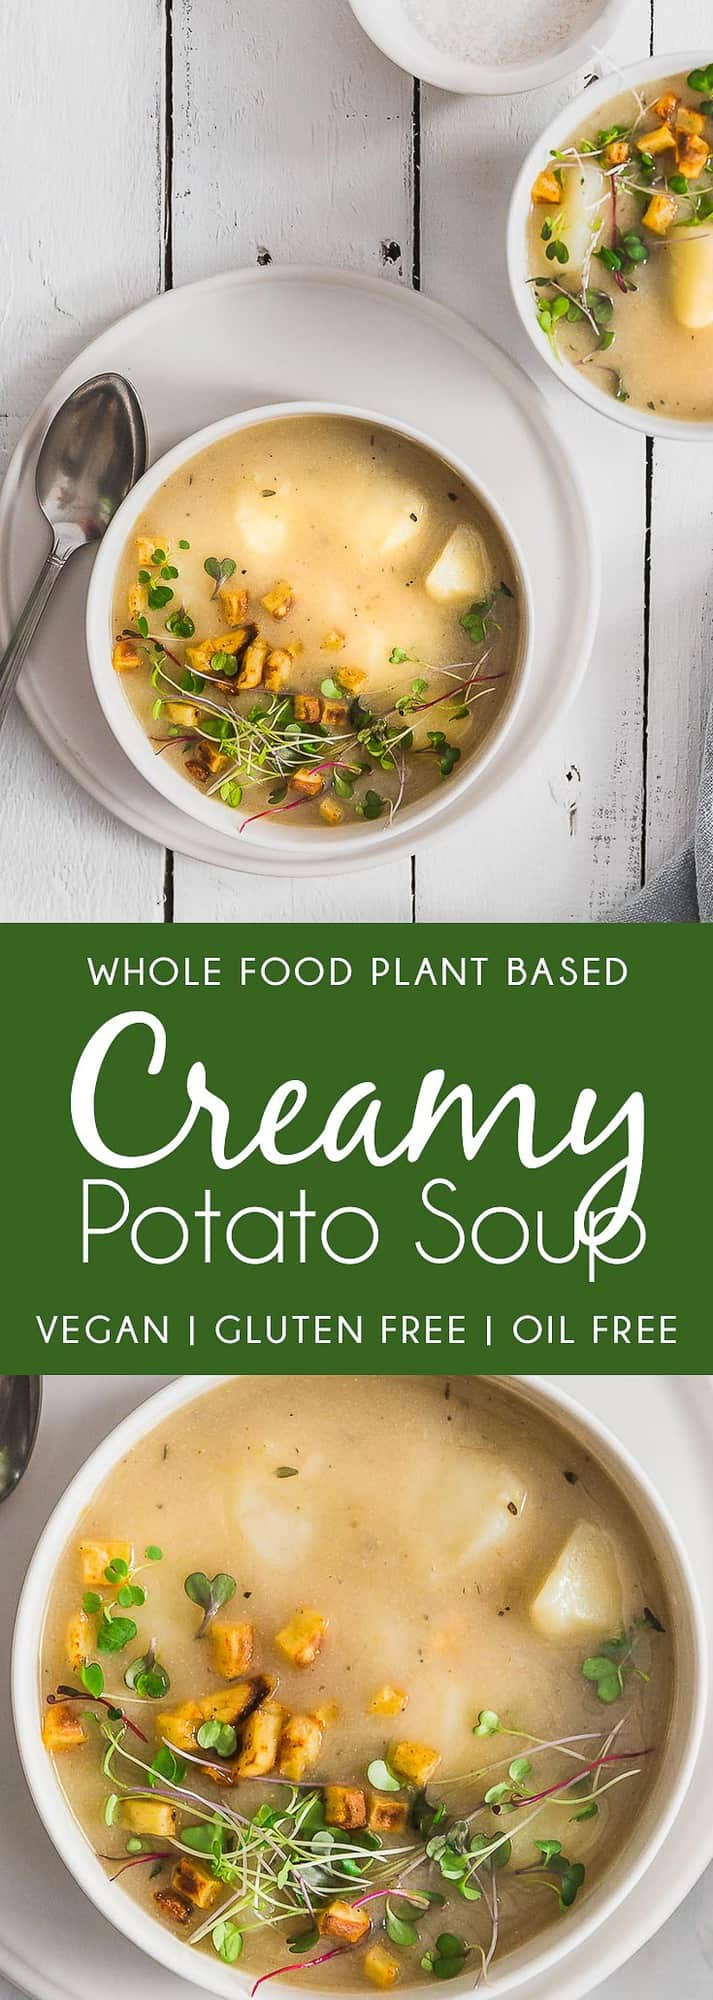 Creamy Potato Soup, plant based, vegan, vegetarian, whole food plant based, gluten free, recipe, wfpb, healthy, healthy vegan, oil free, no refined sugar, no oil, refined sugar free, dairy free, soup, potatoes